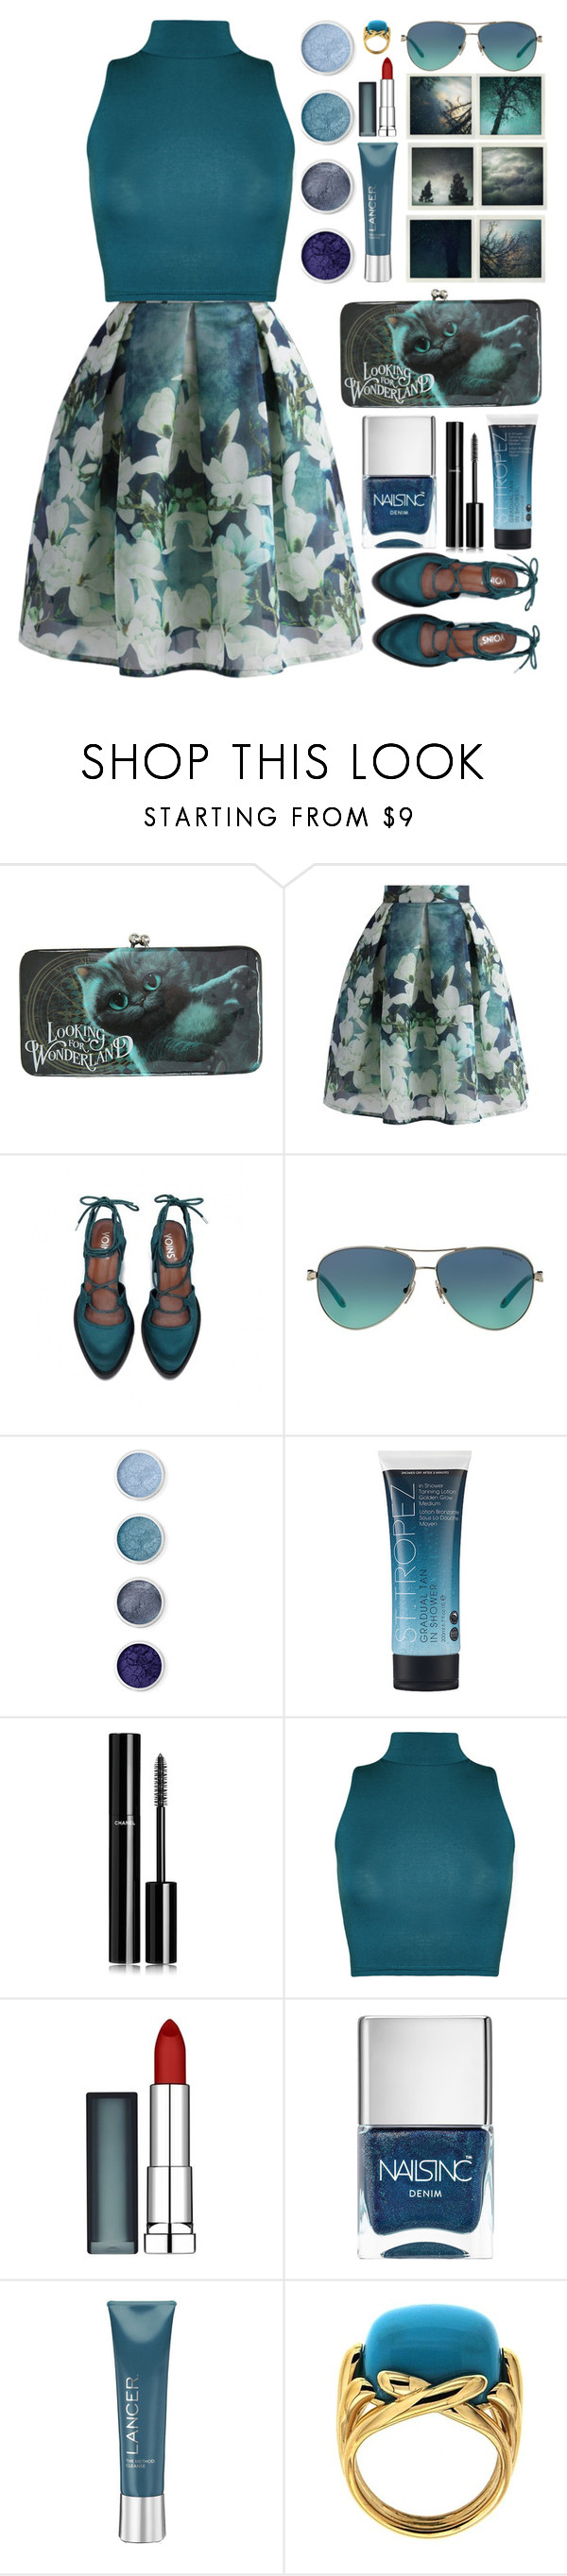 """""""ALICE // itsybitsy62"""" by itsybitsy62 ❤ liked on Polyvore featuring Polaroid, Disney, Chicwish, Tiffany & Co., Terre Mère, St. Tropez, Chanel, WearAll, Maybelline and Nails Inc."""